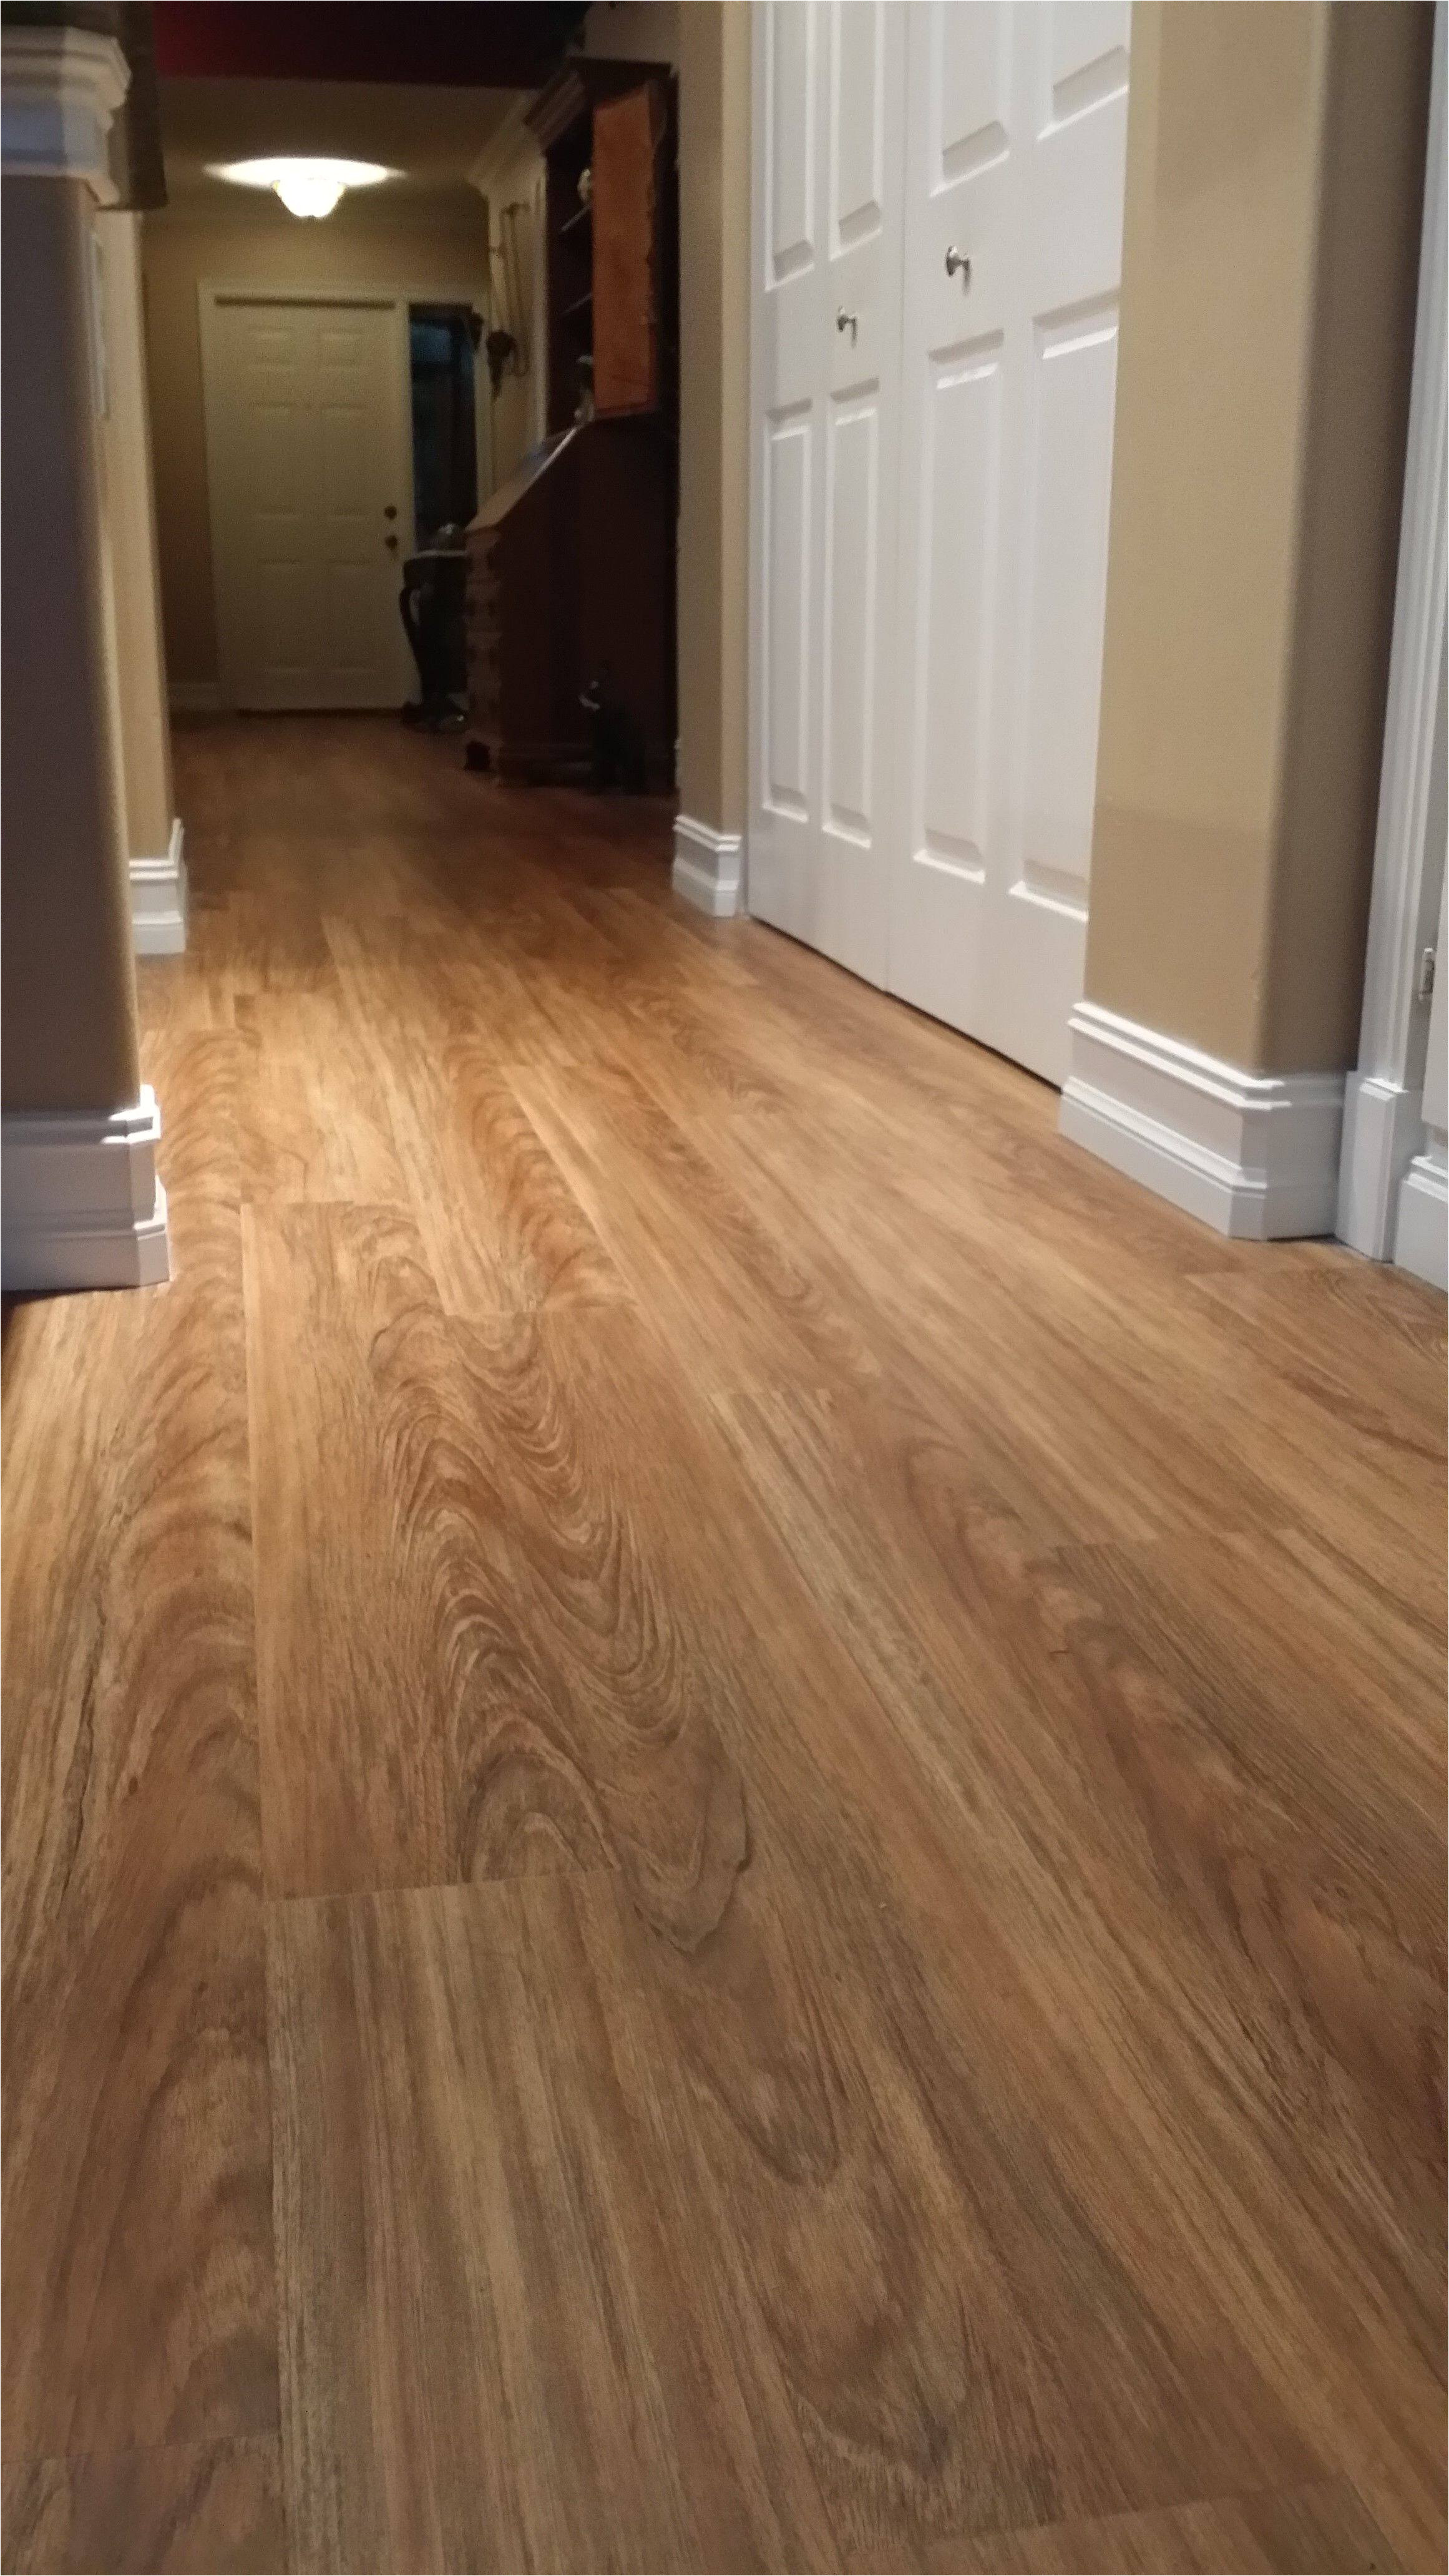 carolina pine vinyl plank flooring awesome of new engineered vinyl plank flooring called classico teak from